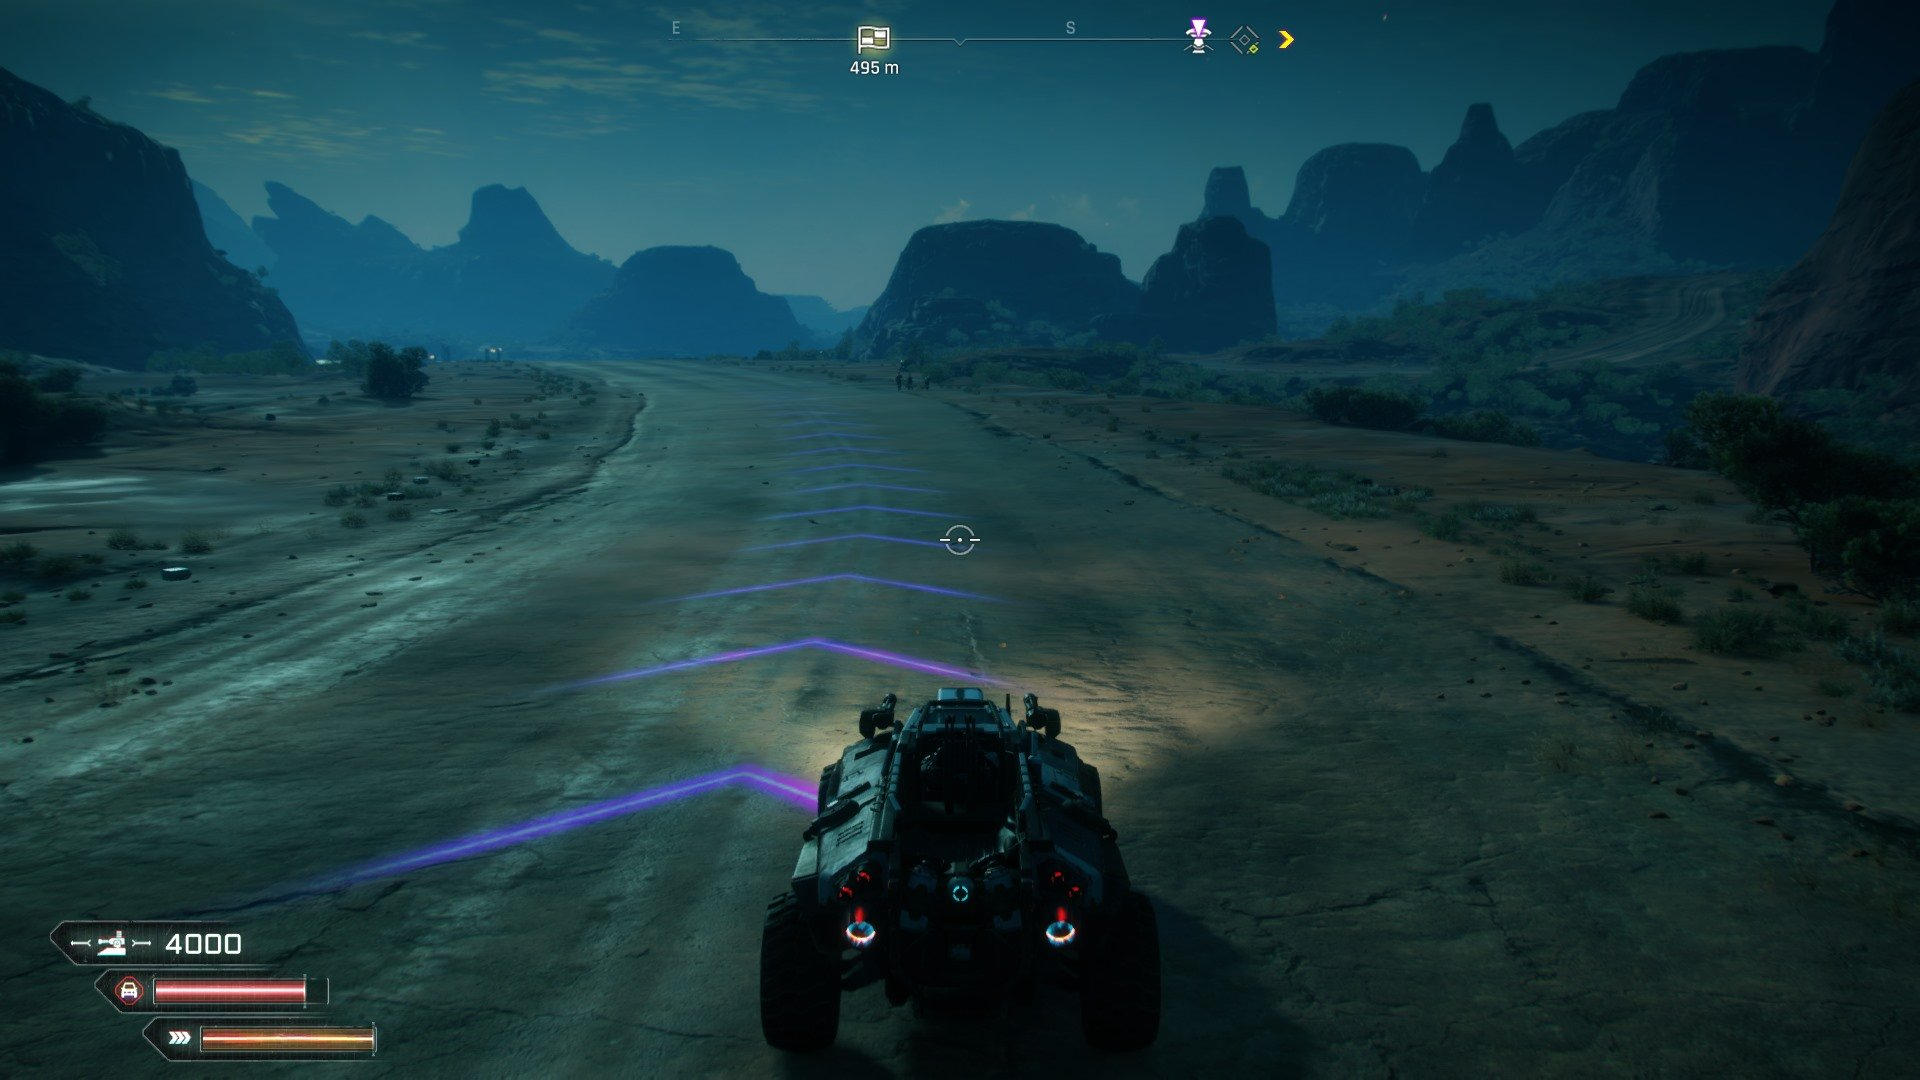 A Waypoint location - How to use Waypoints in Rage 2